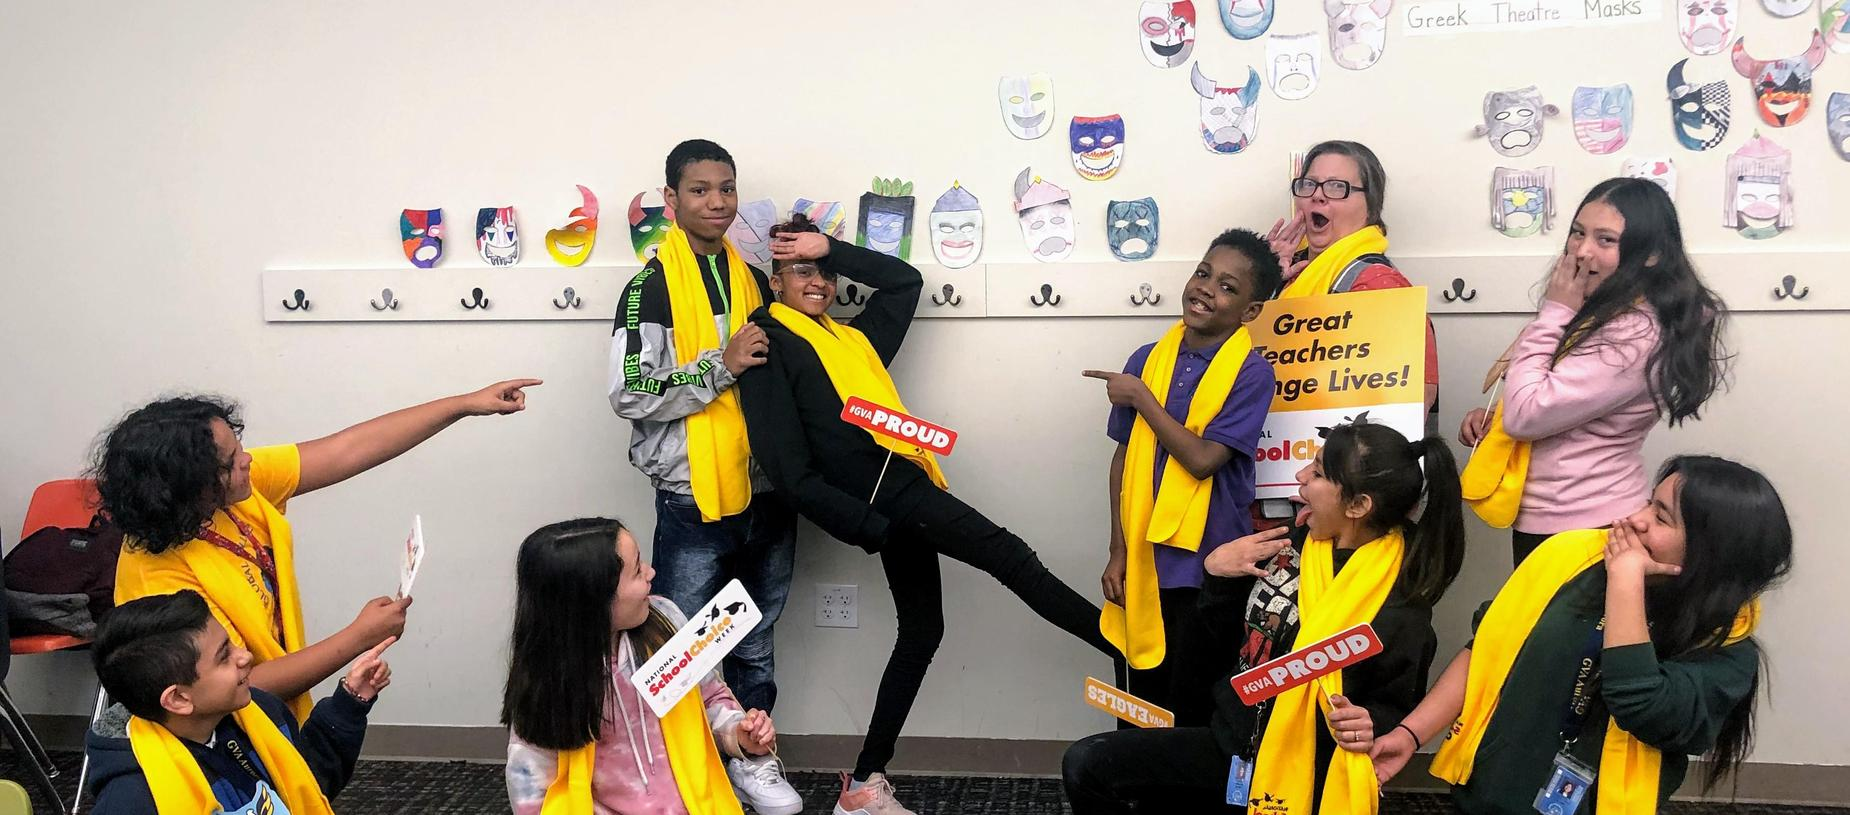 School Choice Week-Ms. Maxwell's 6th Grade Drama Class